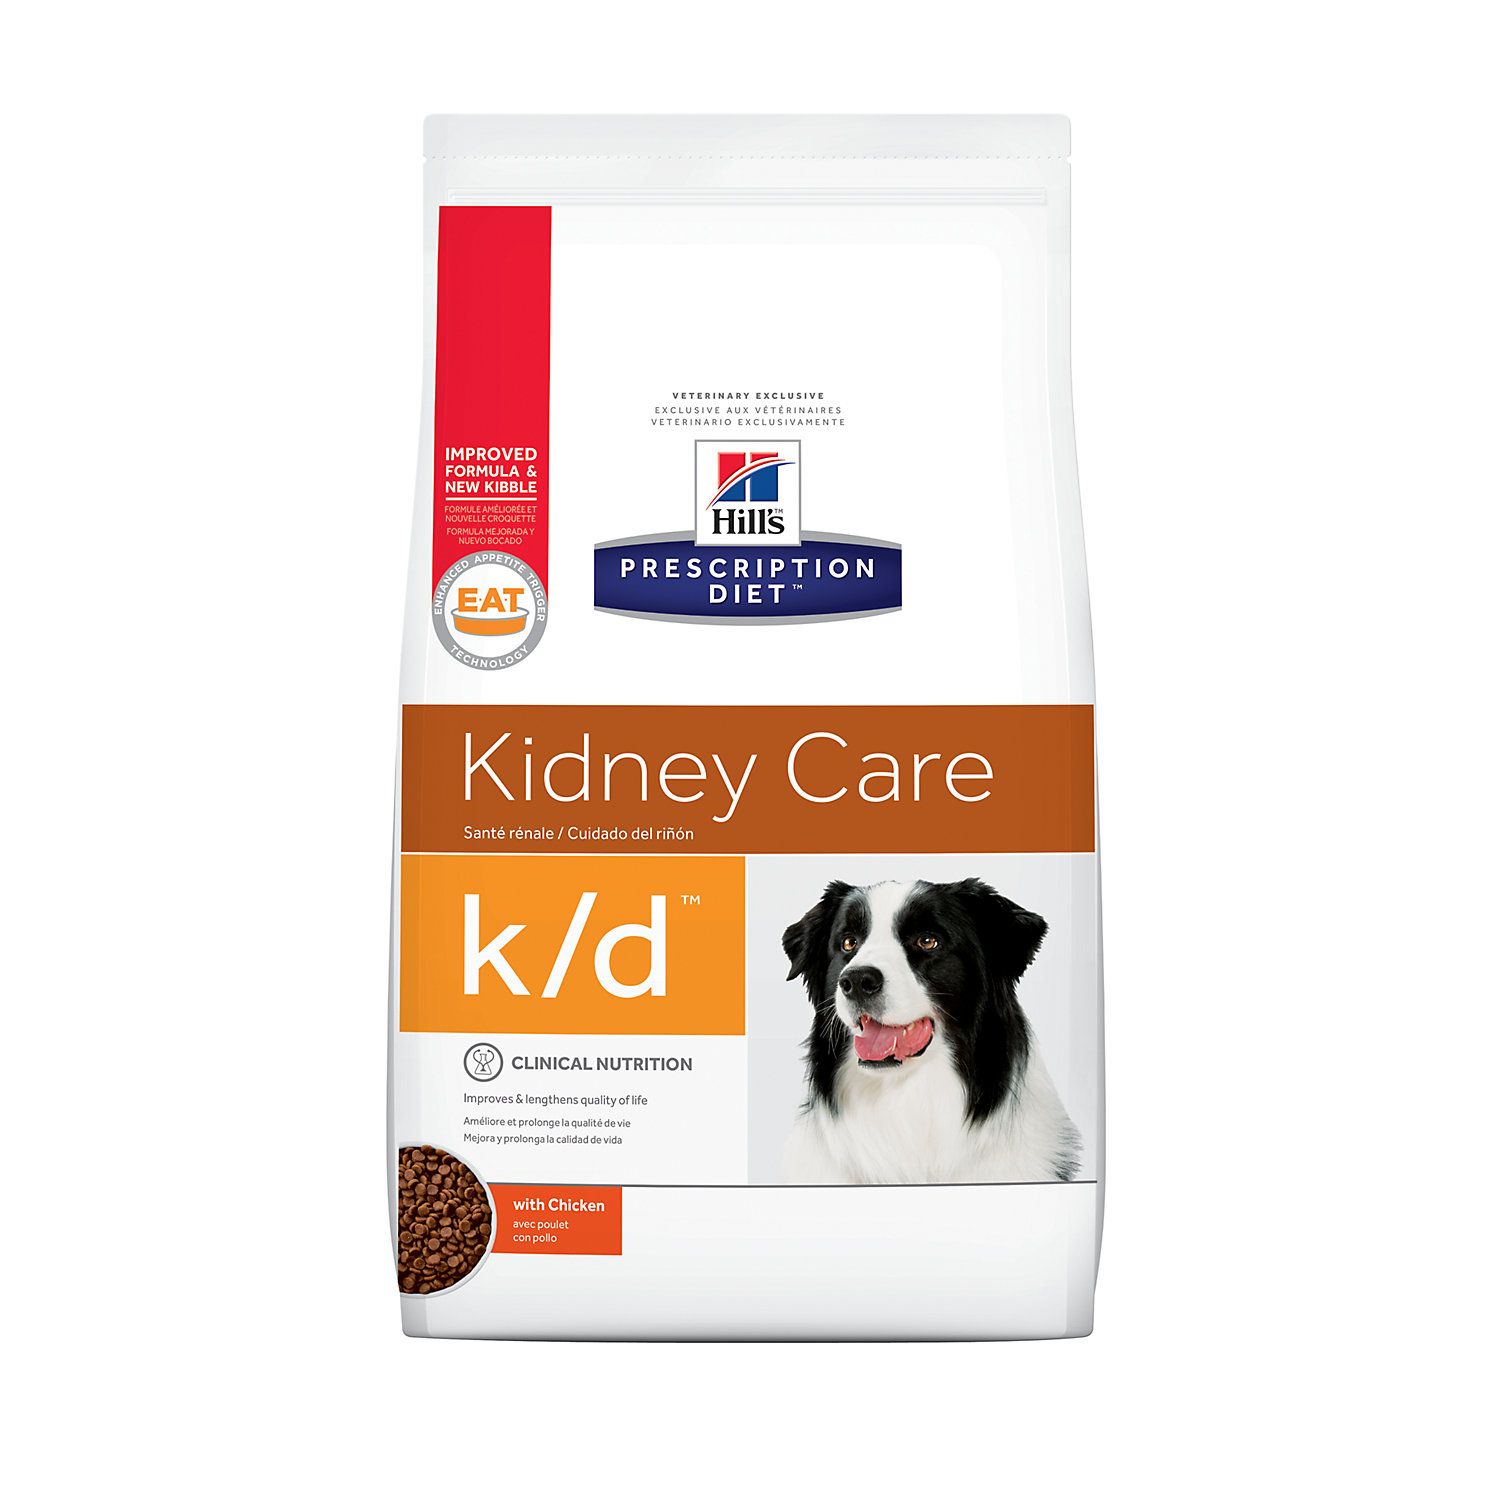 Hills Prescription Diet kd Kidney Care with Chicken Dry Dog Food 27.5 lbs. Bag